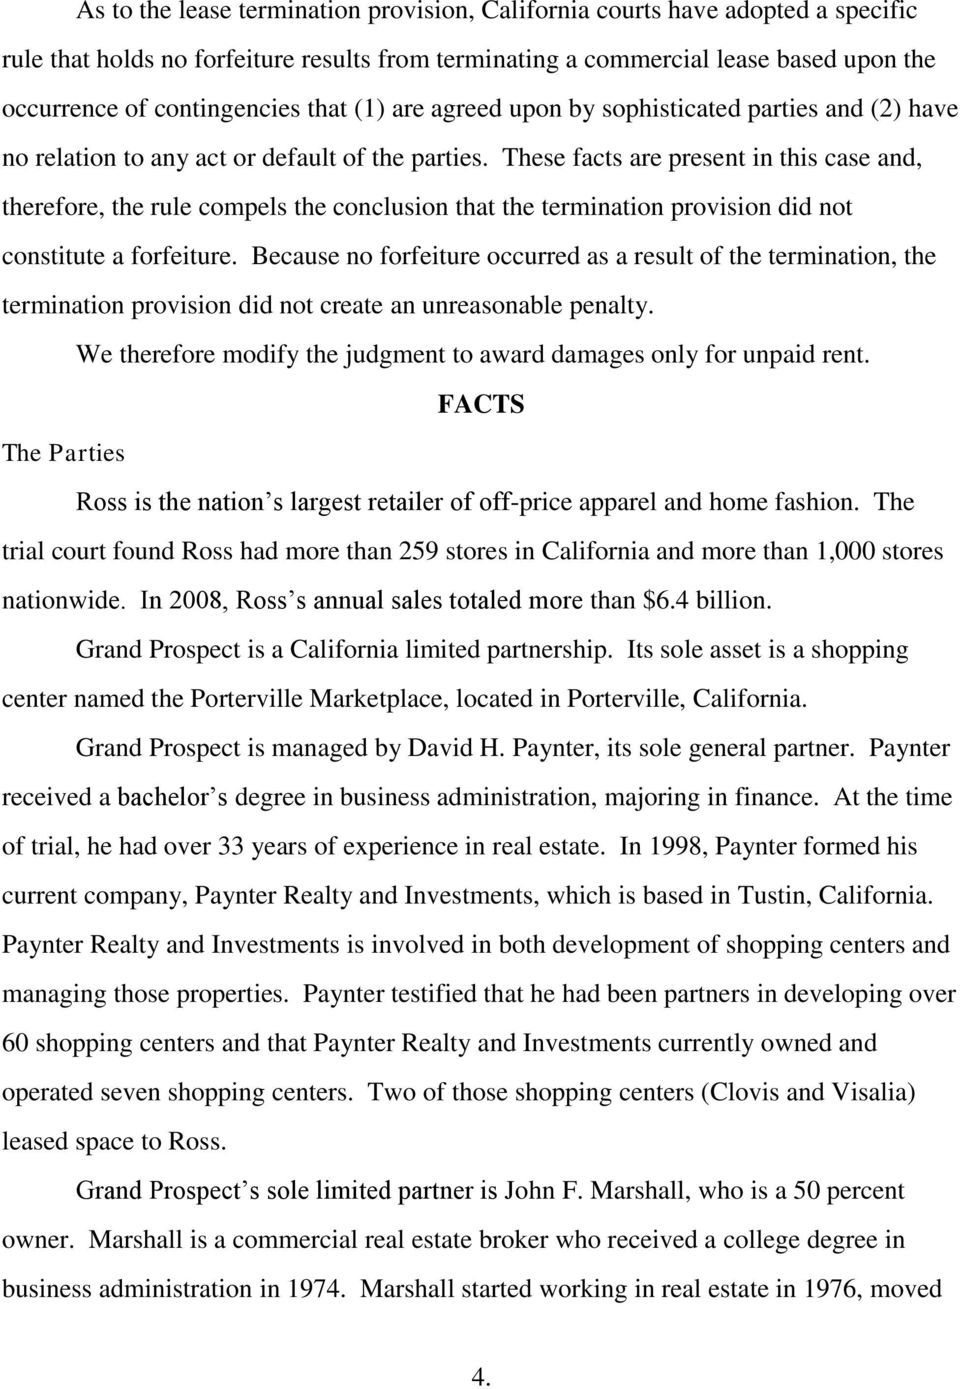 These facts are present in this case and, therefore, the rule compels the conclusion that the termination provision did not constitute a forfeiture.